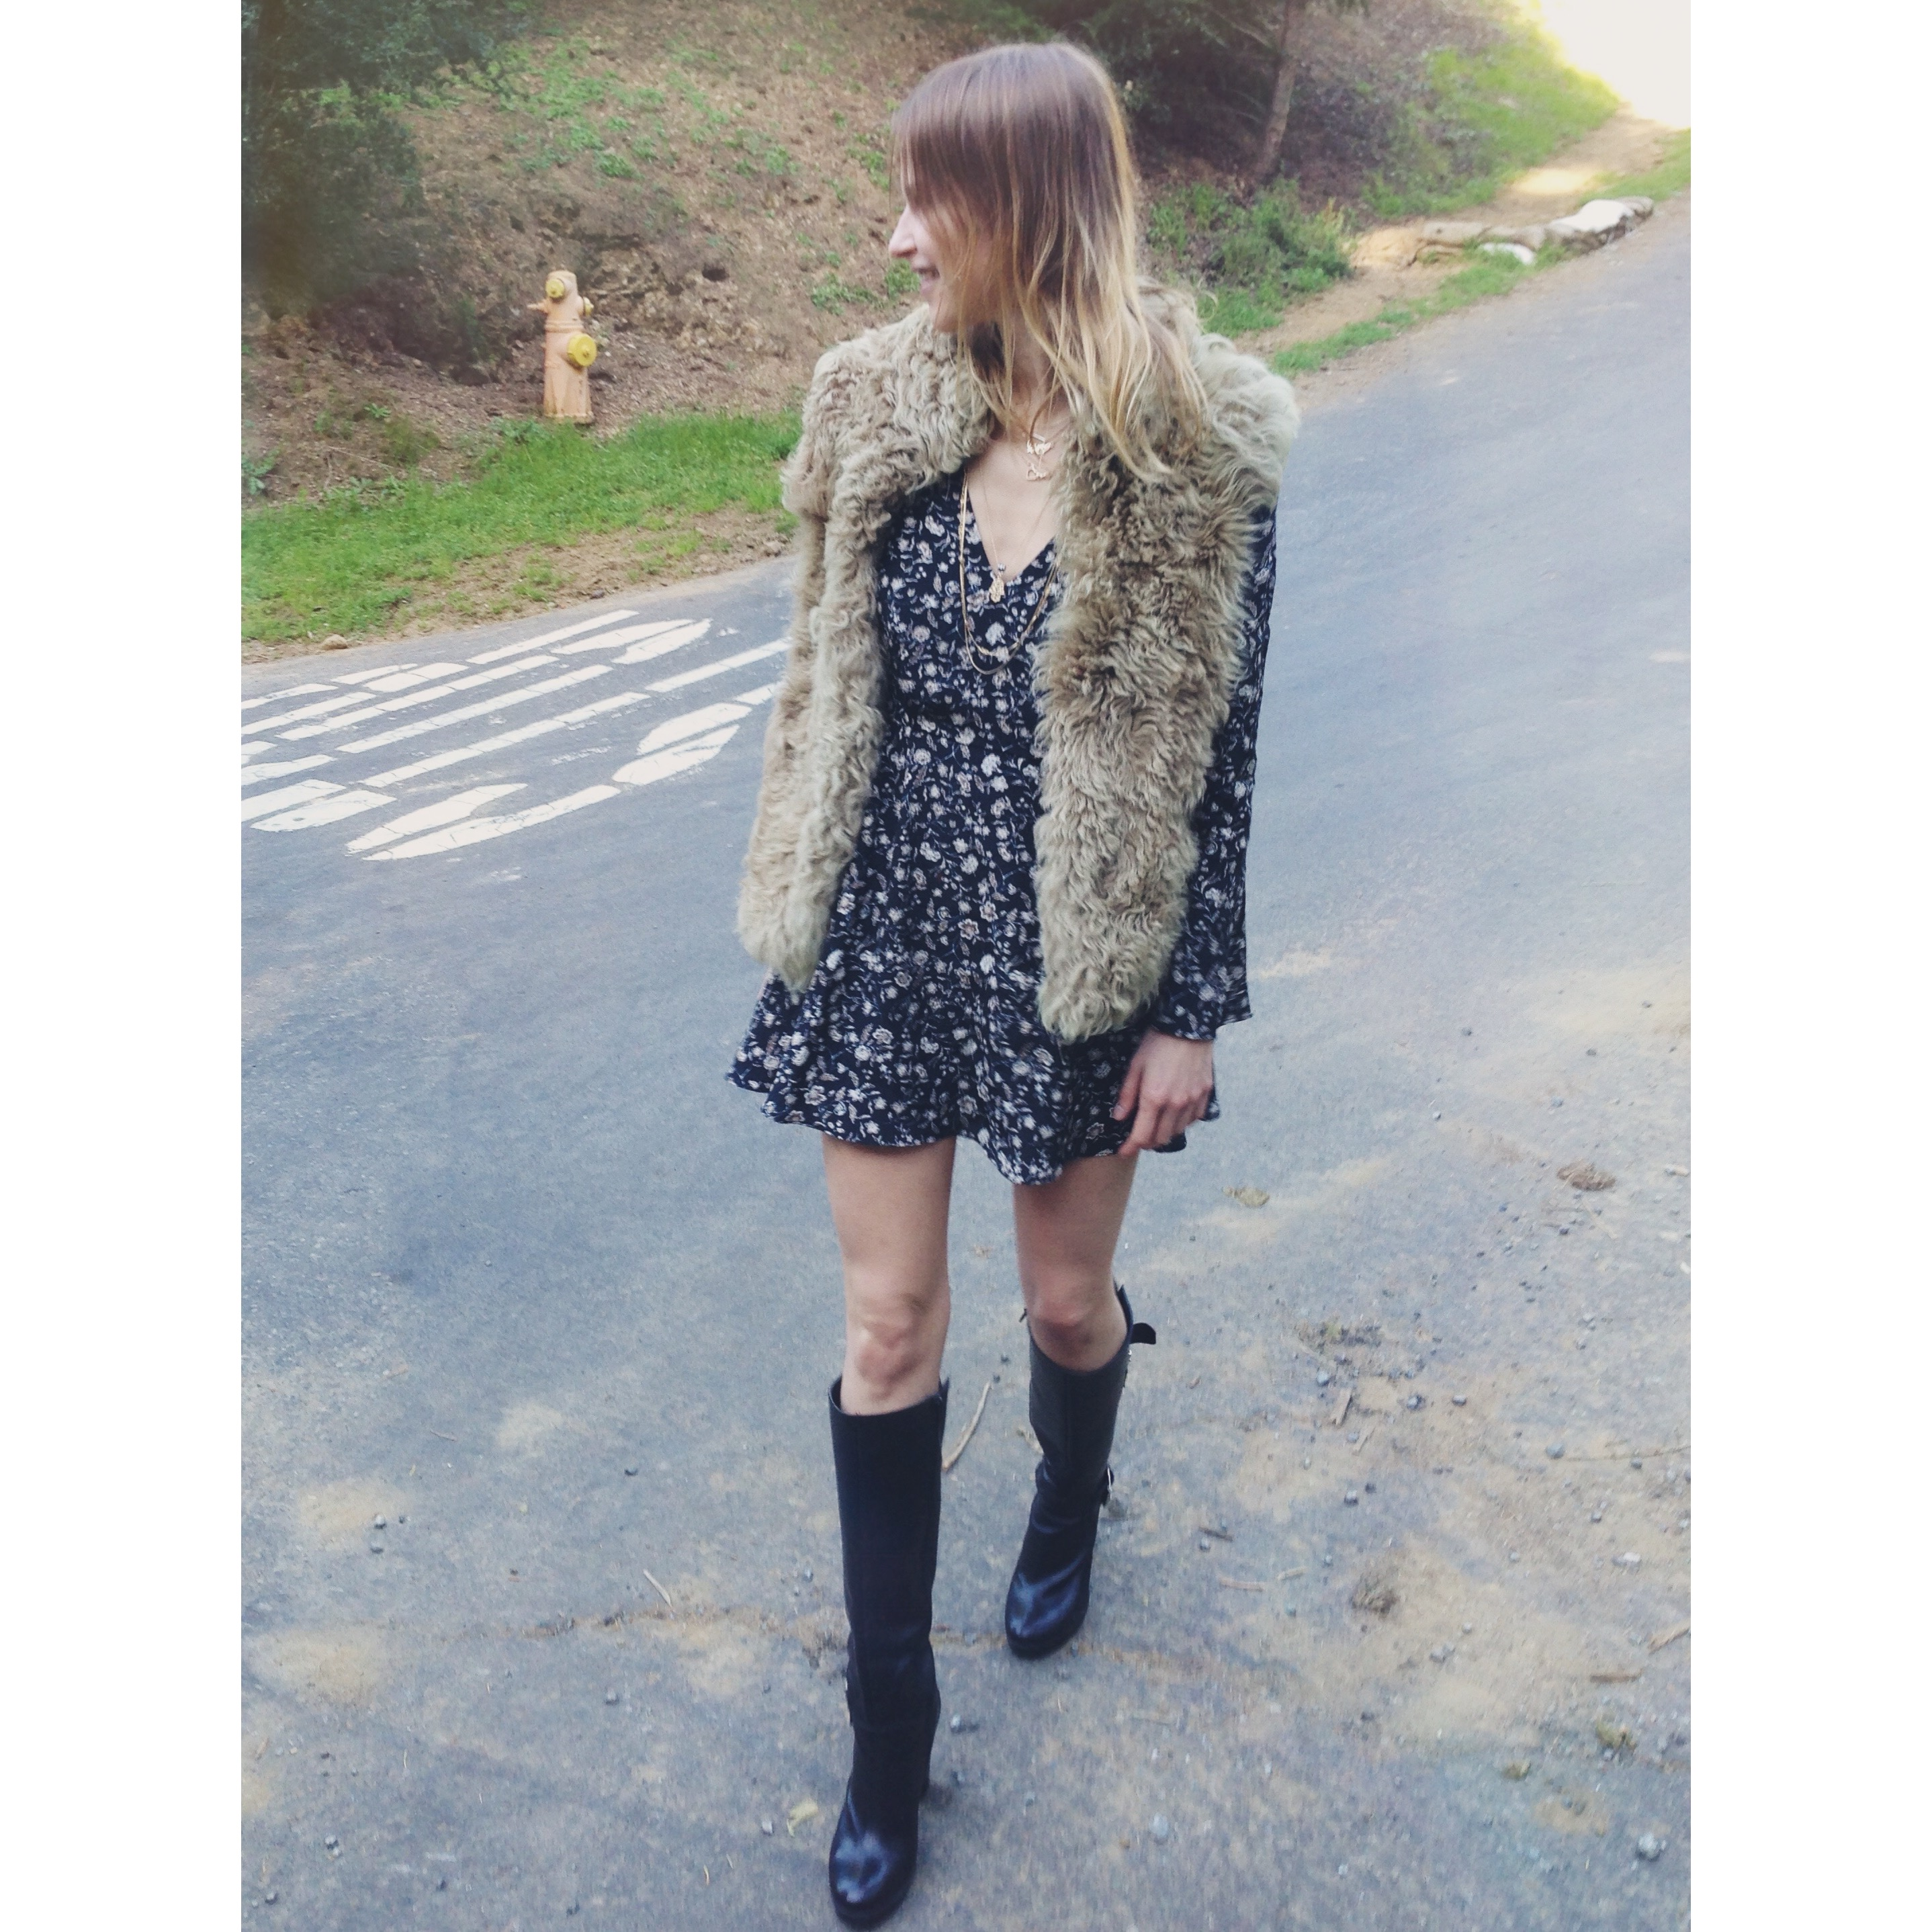 floral summer dress and knee high boots i am metal